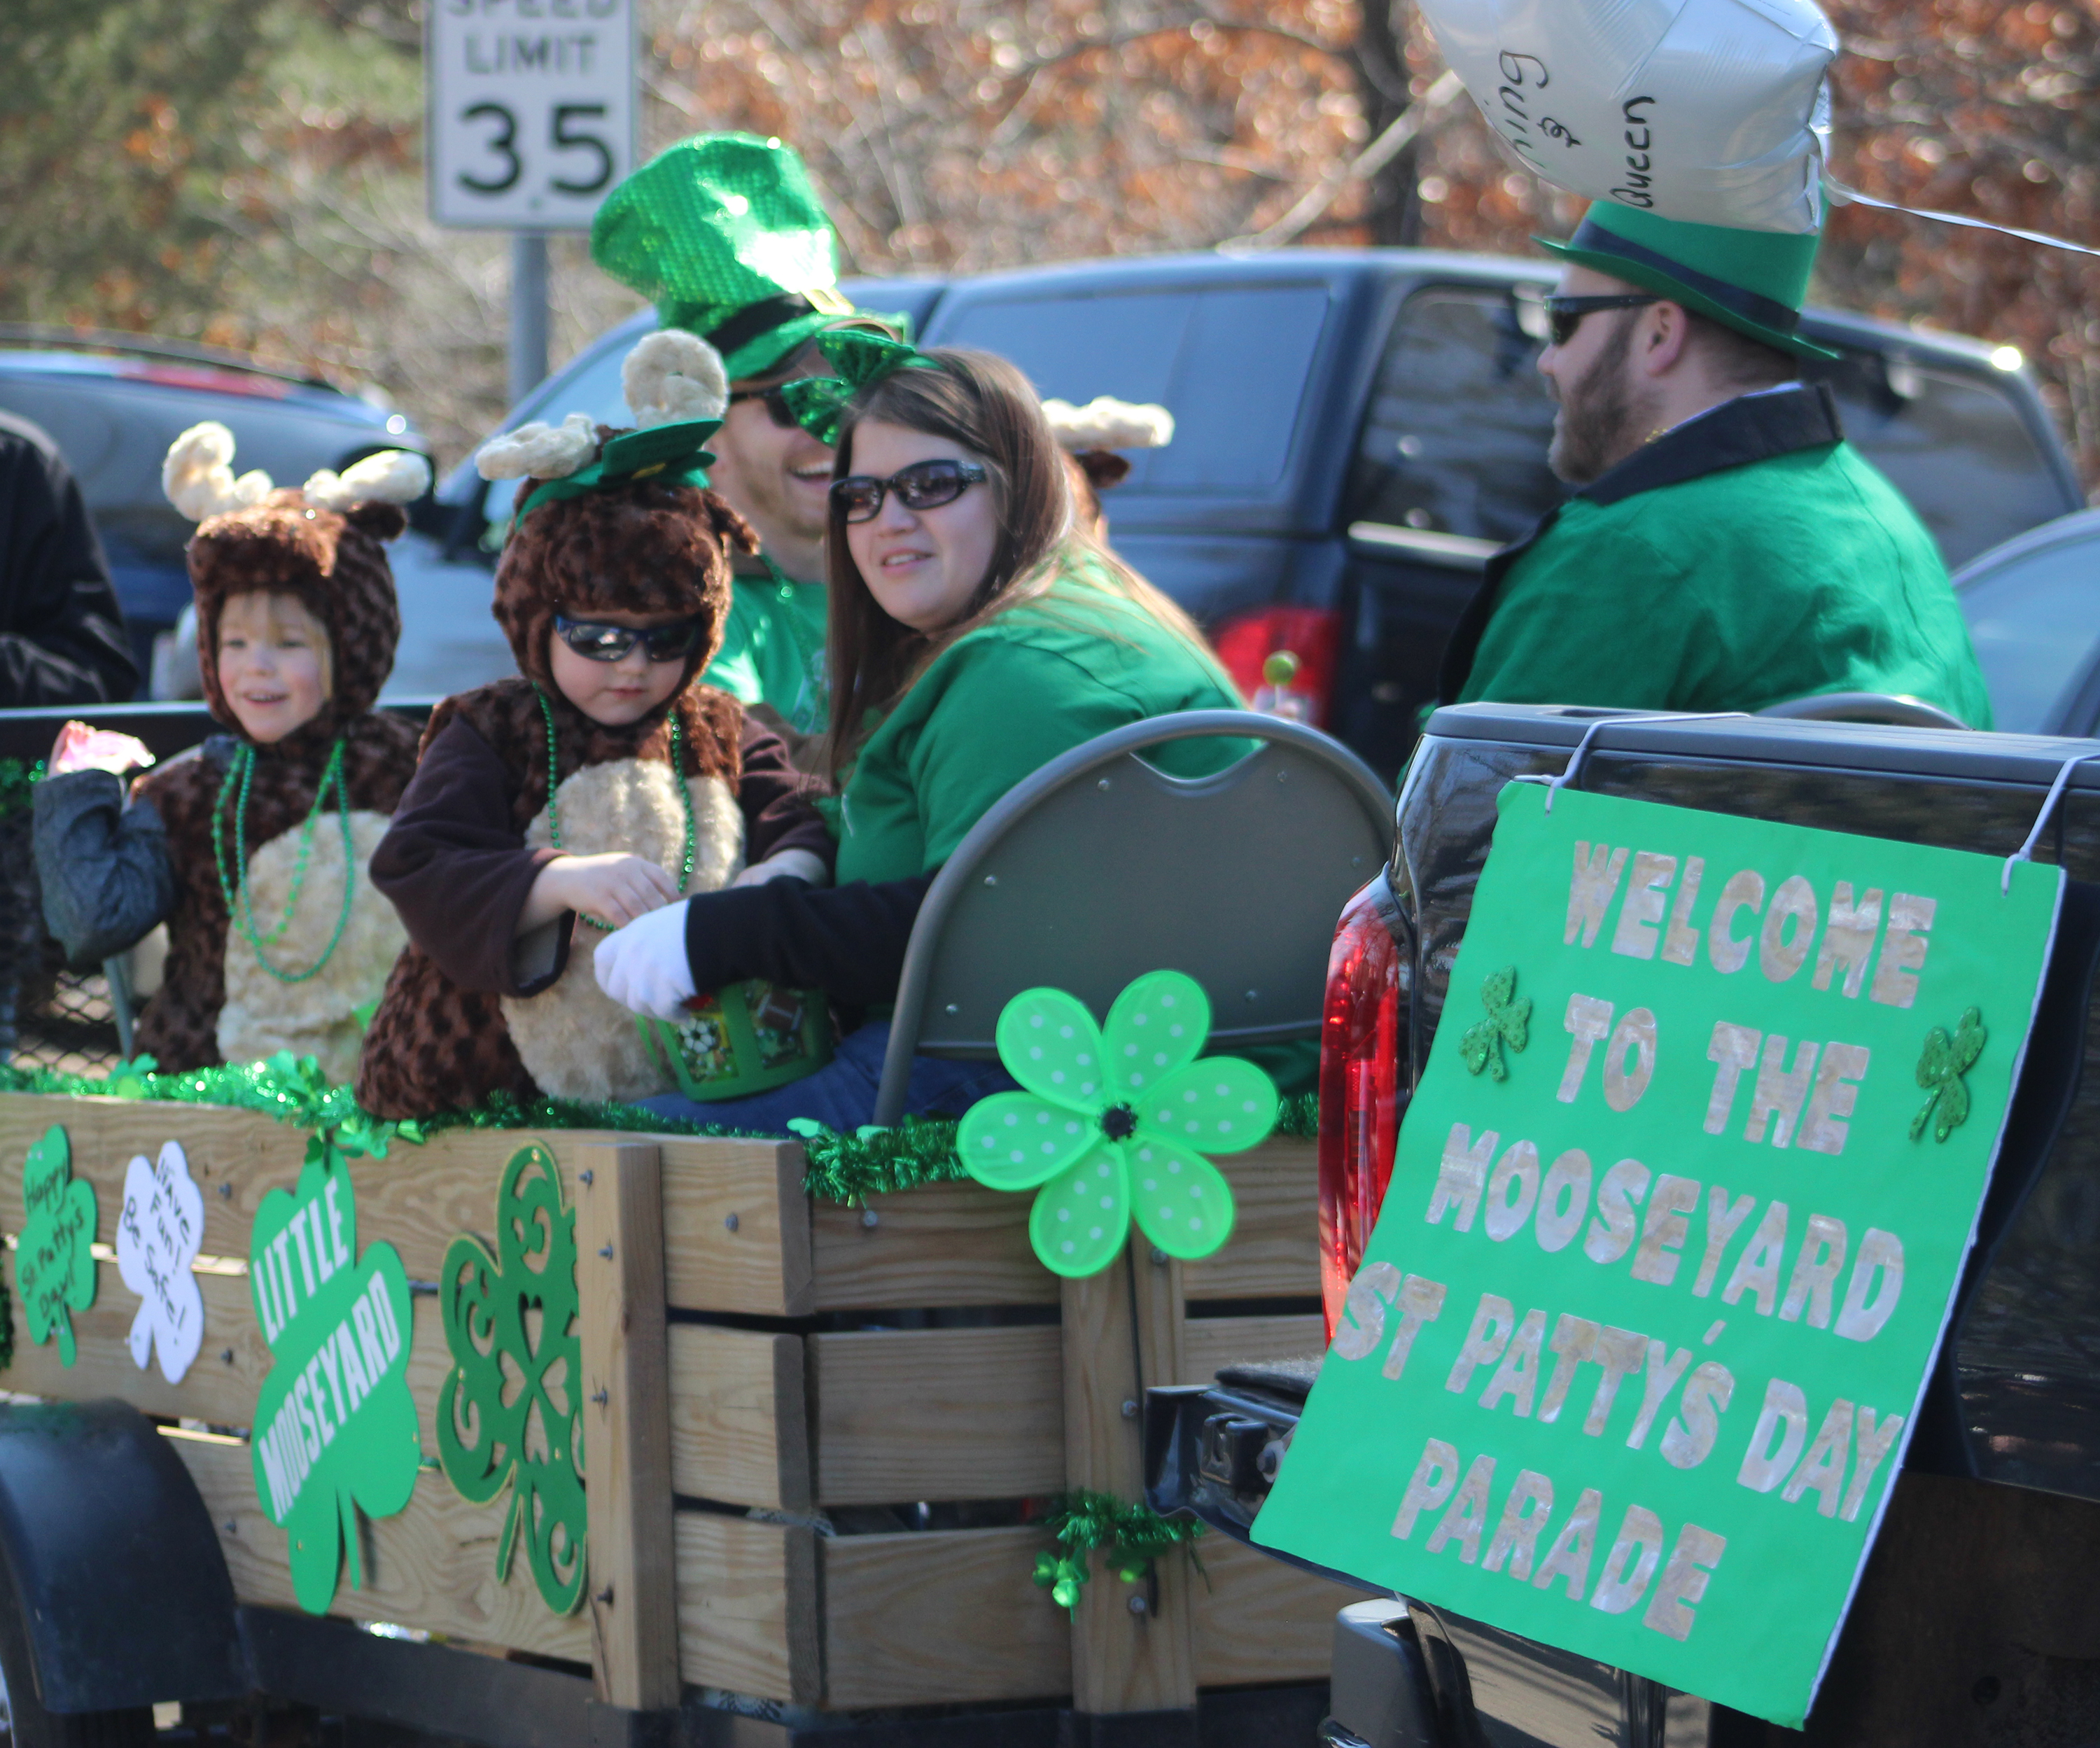 Plenty of folks wearing green or dressing up as moose could be found on the Little Mooseyard float, one of the first floats in the 2021 St. Patrick's Day parade welcoming visitors to the parade. Both sides of the street were packed with people excited to get out and enjoy a parade after COVID-19 canceled more than a year's worth of events throughout the area.(Lee Pulaski | NEW Media)